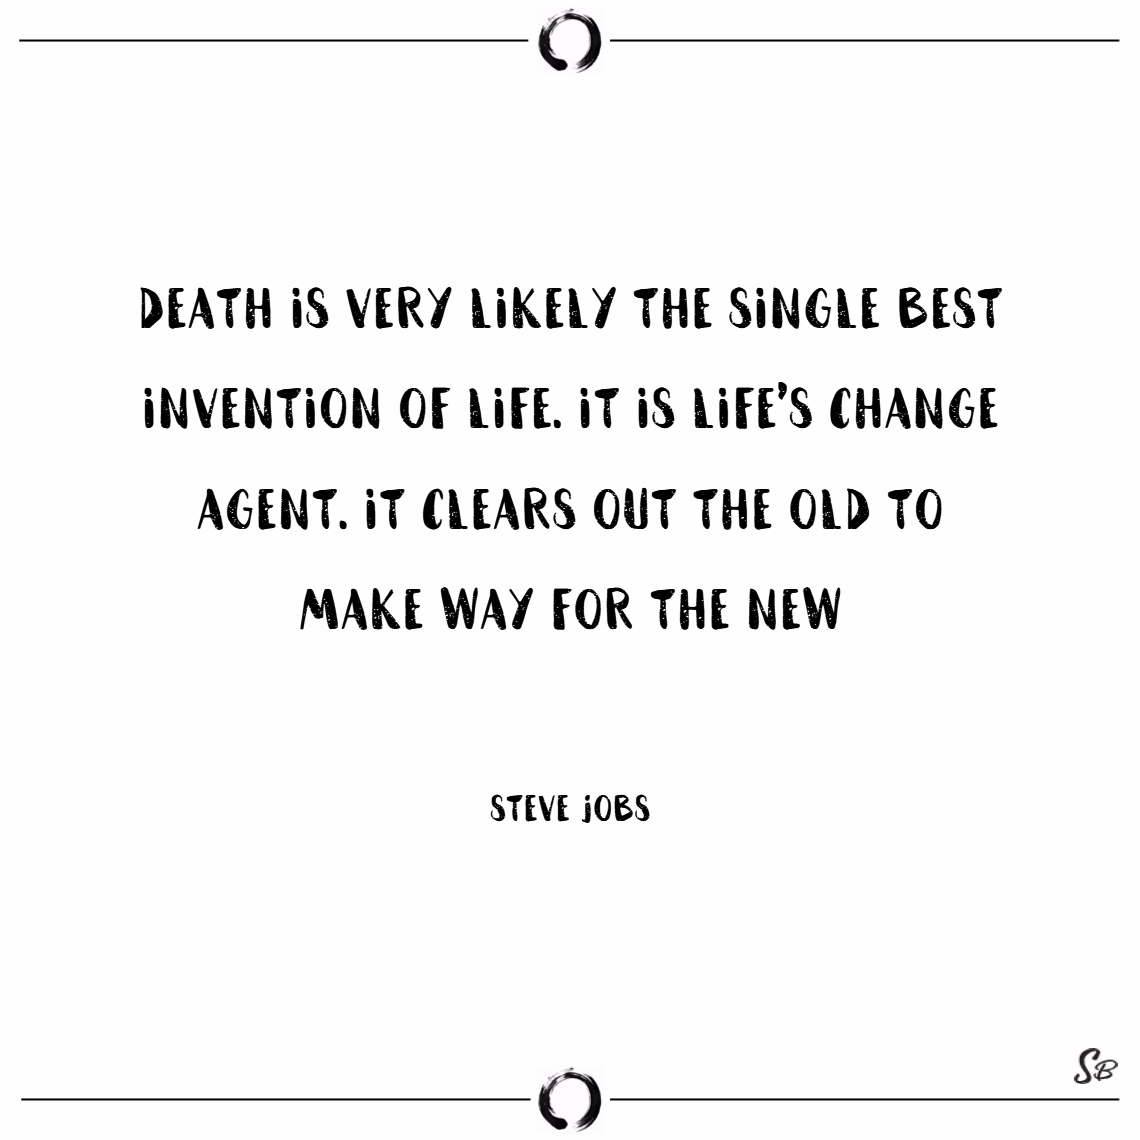 Death is very likely the single best invention of life. it is life's change agent. it clears out the old to make way for the new. – steve jobs